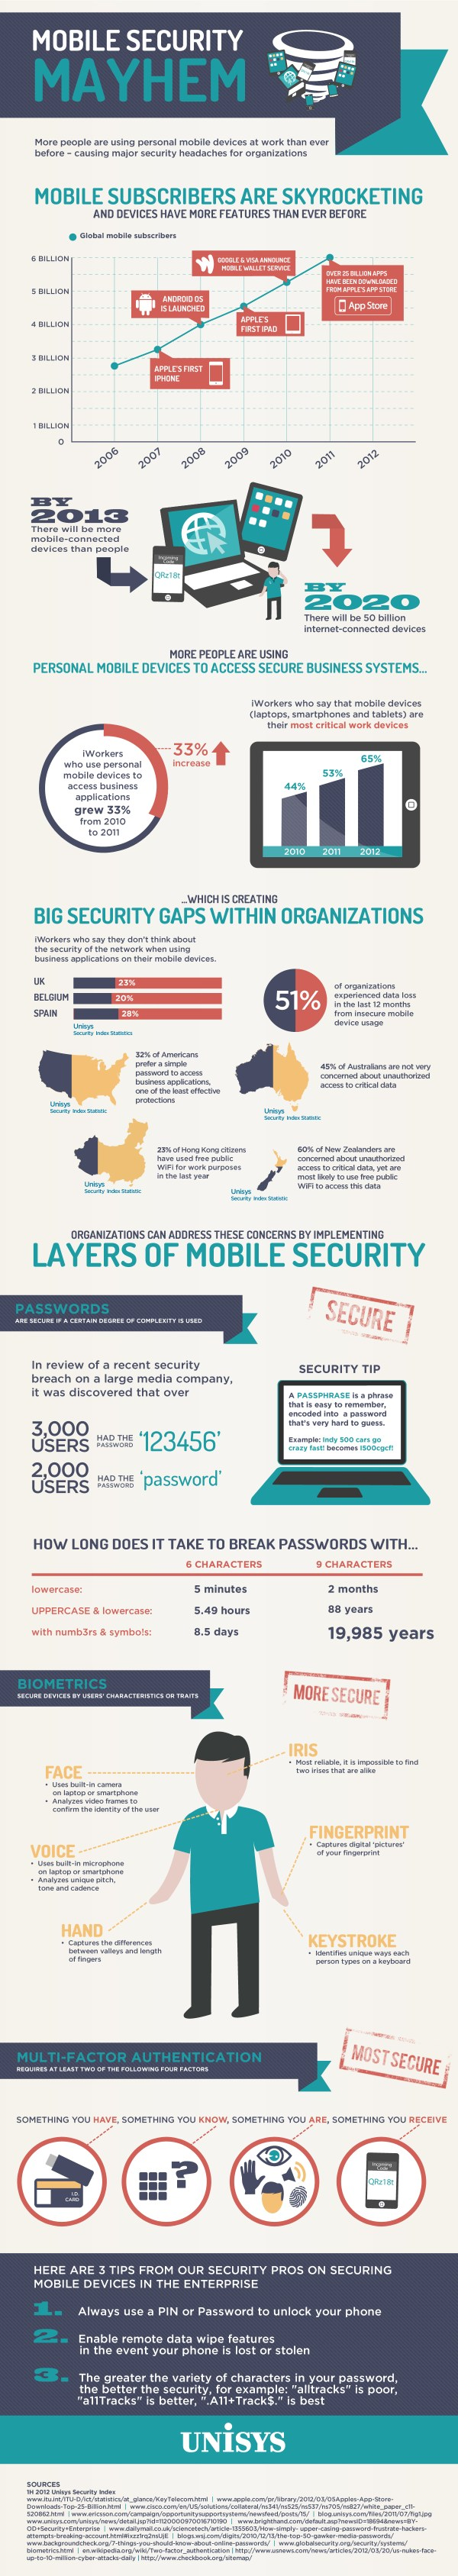 Mobile Security Mayhem